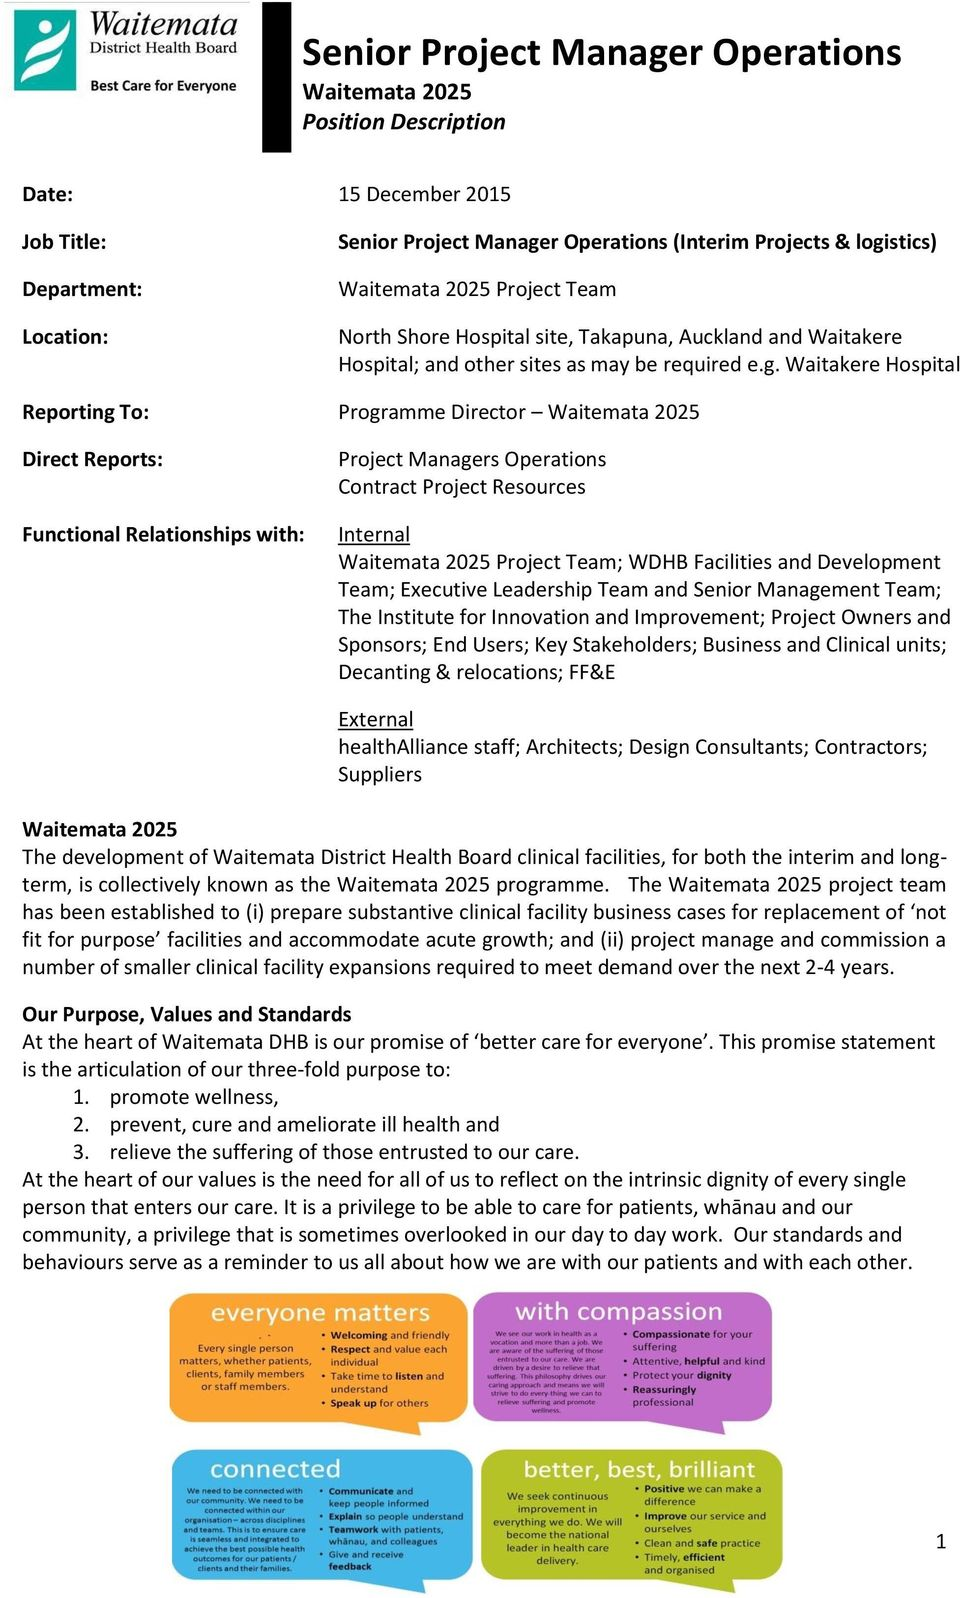 Waitakere Hospital Reporting To: Programme Director Direct Reports: Functional Relationships with: Project Managers Operations Contract Project Resources Internal Project Team; WDHB Facilities and